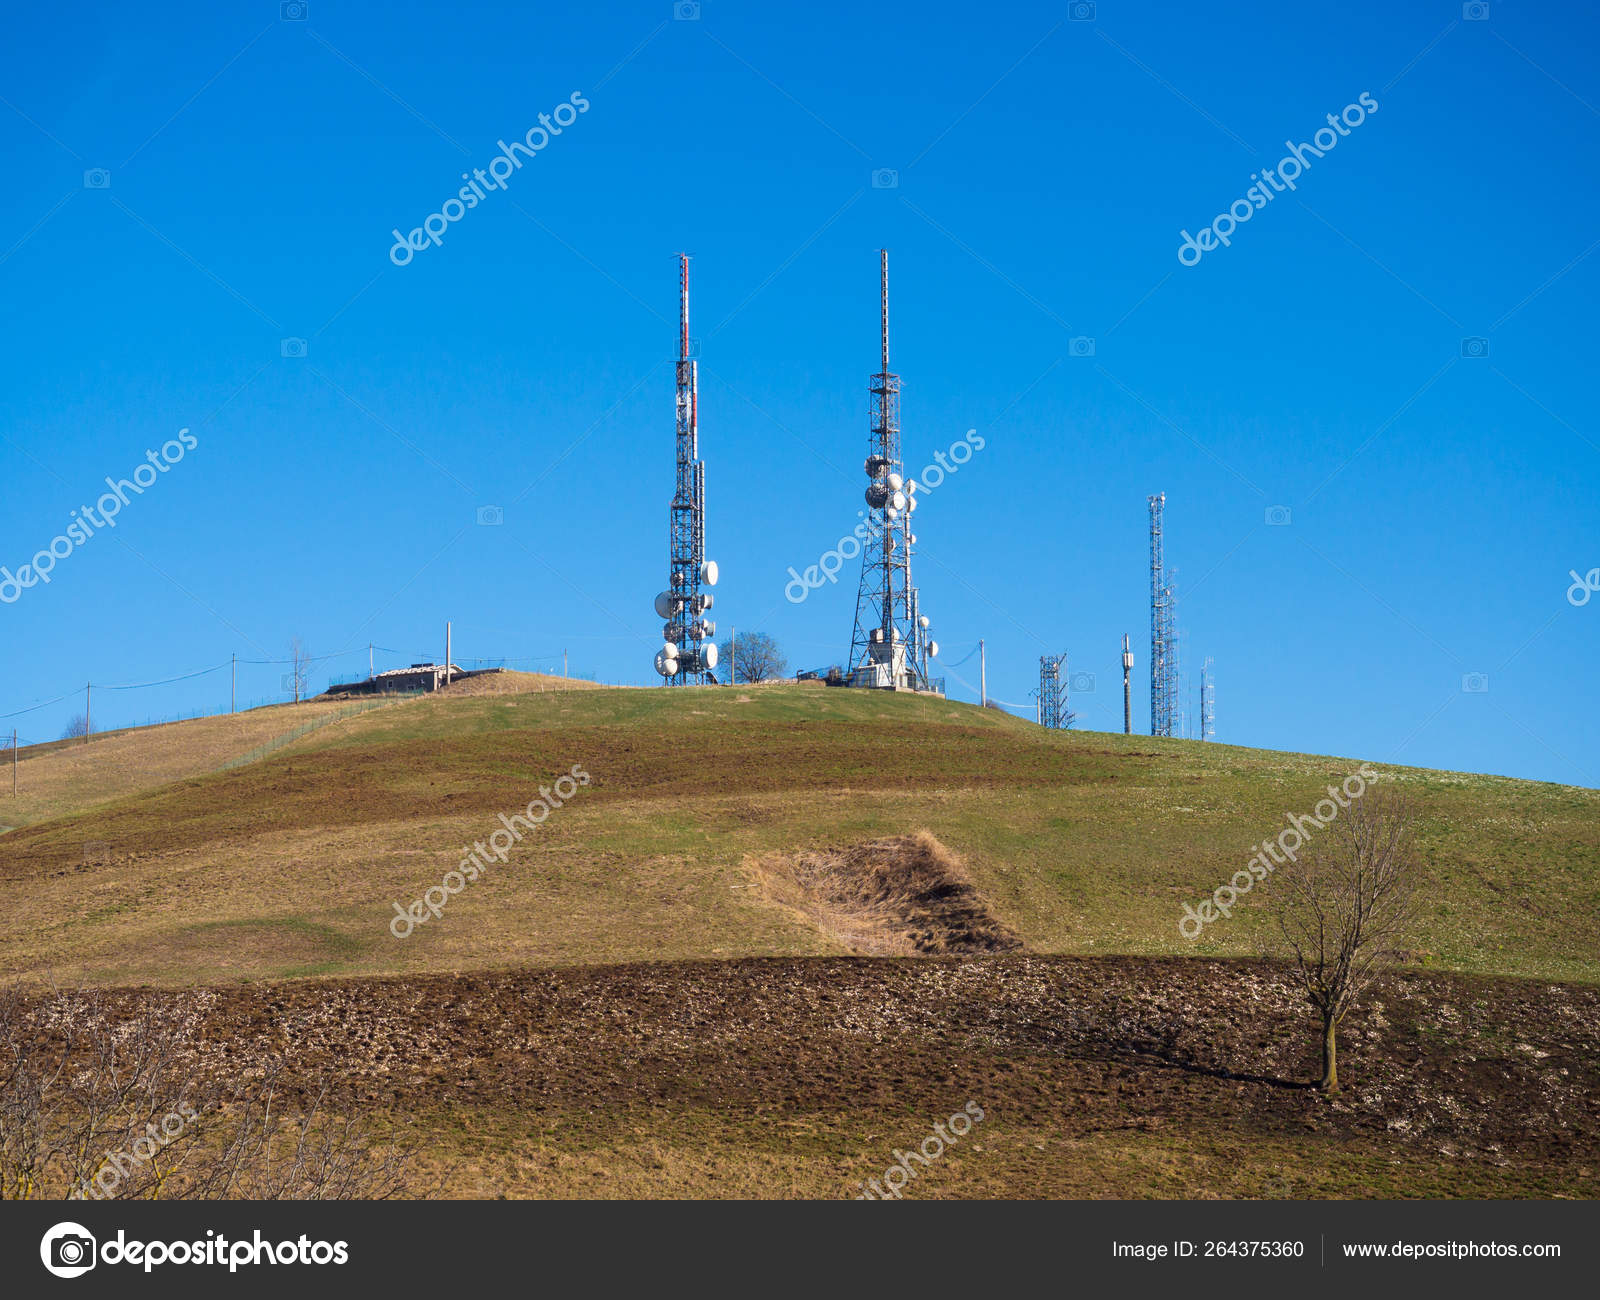 Hills with television antennas, telephone repeaters and wifi